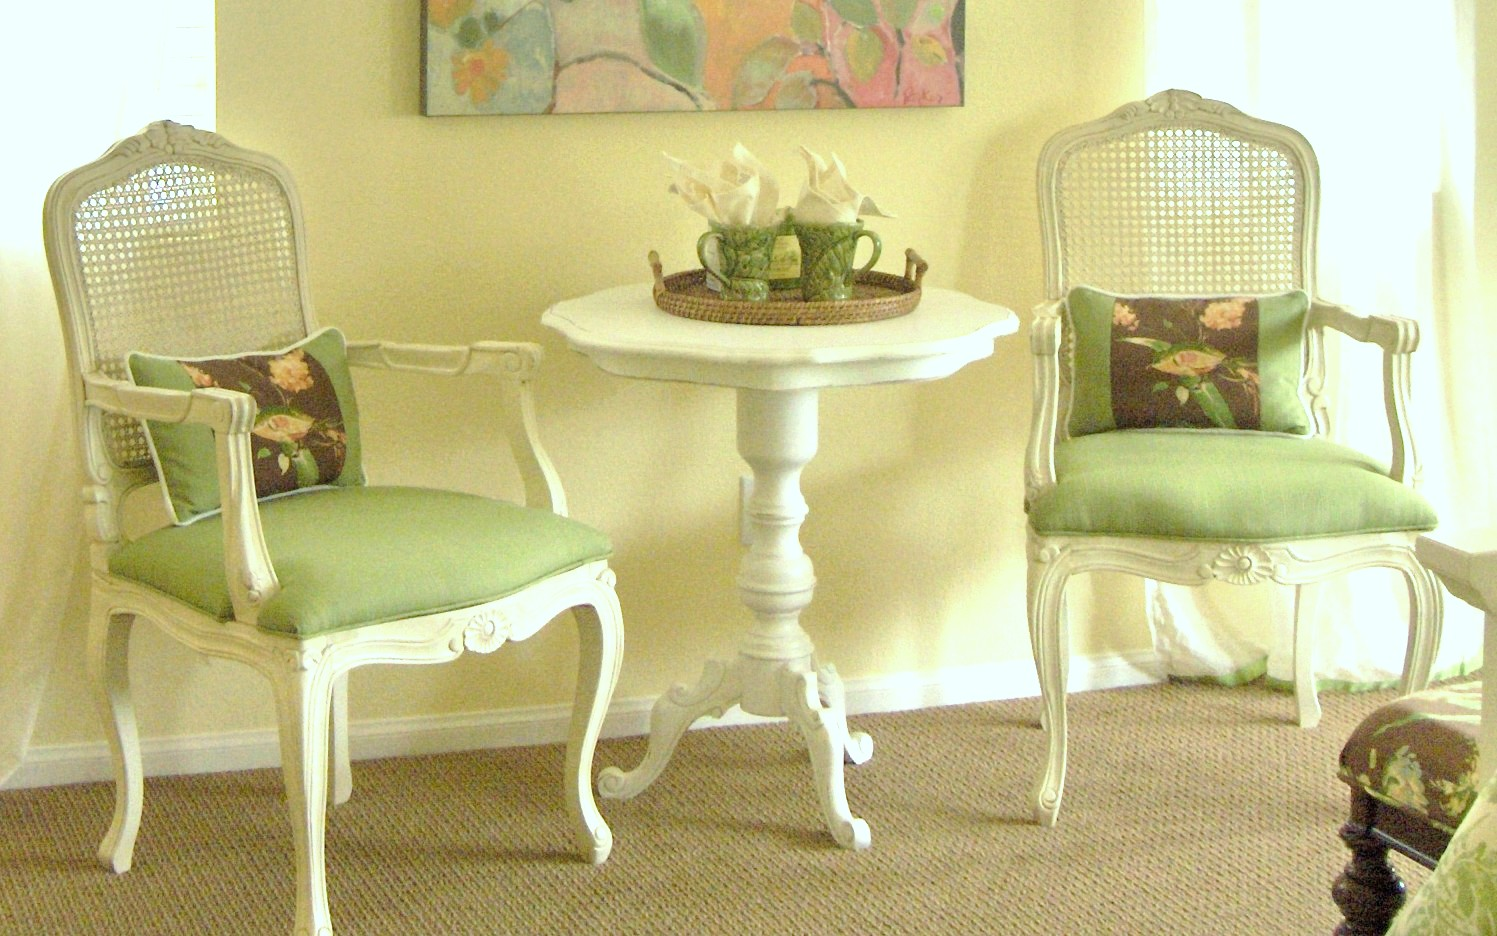 Five Great Reasons To Reuse Furniture